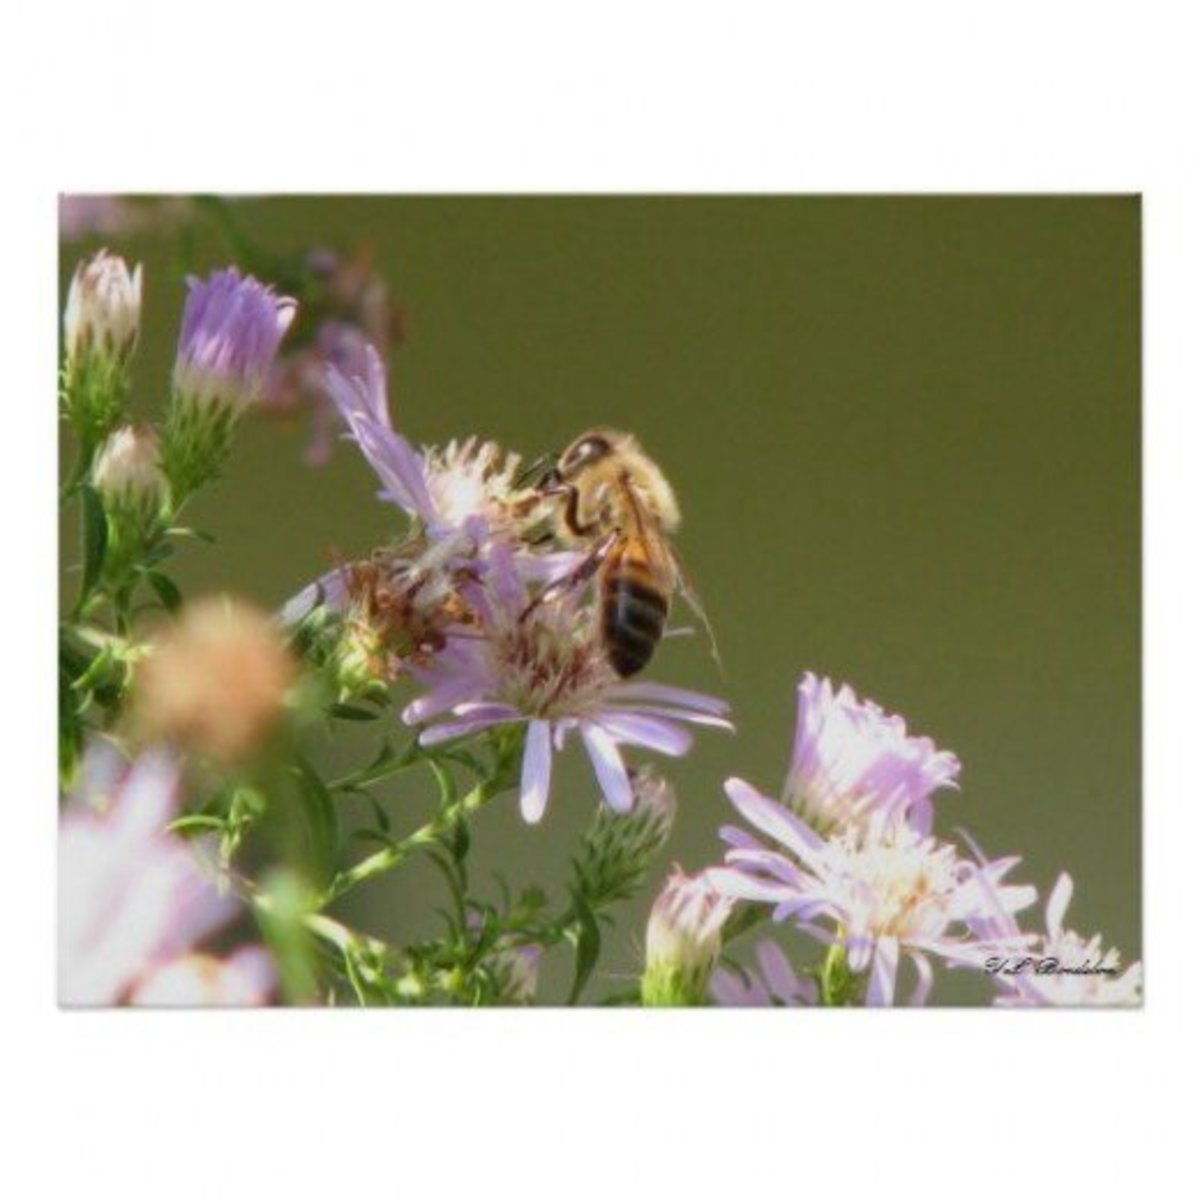 Wildflowers such as this purple aster are an important part in the prevention of Colony Collapse Disorder.